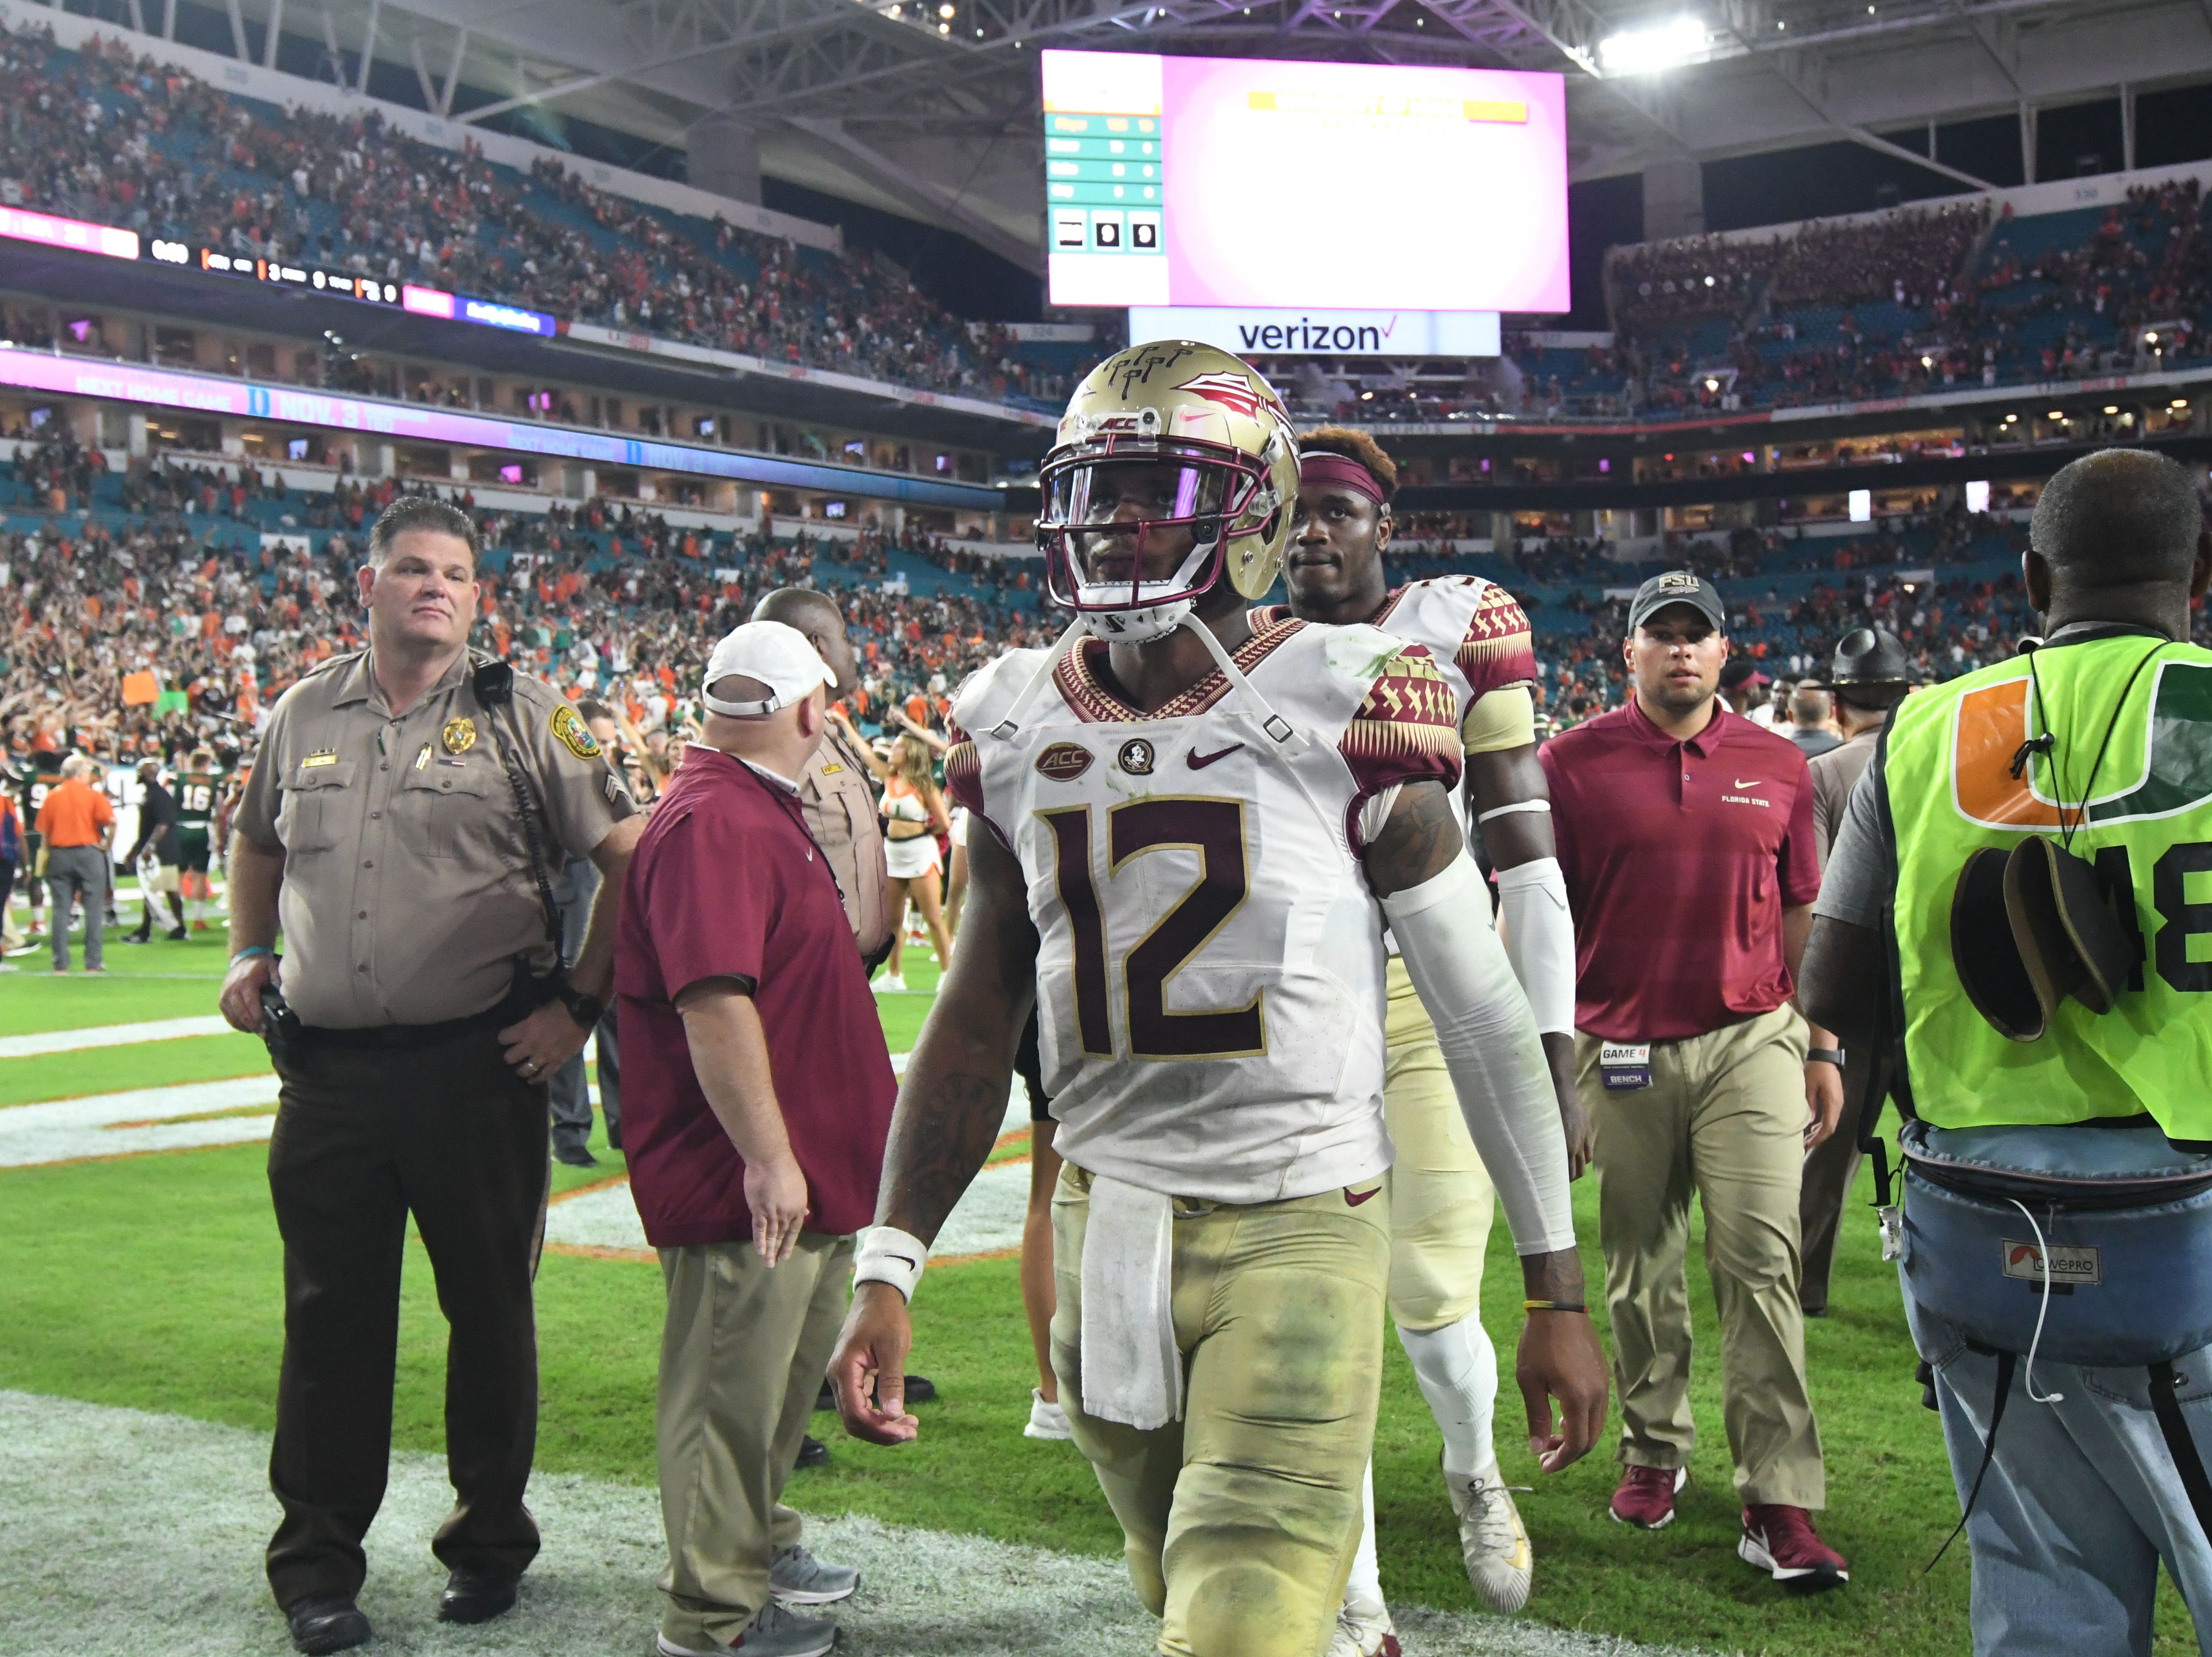 FSU redshirt junior quarterback Deondre Francois (12) walking off the field after losing to Miami 28-27 at the Hard Rock Stadium on October 6th 2018.